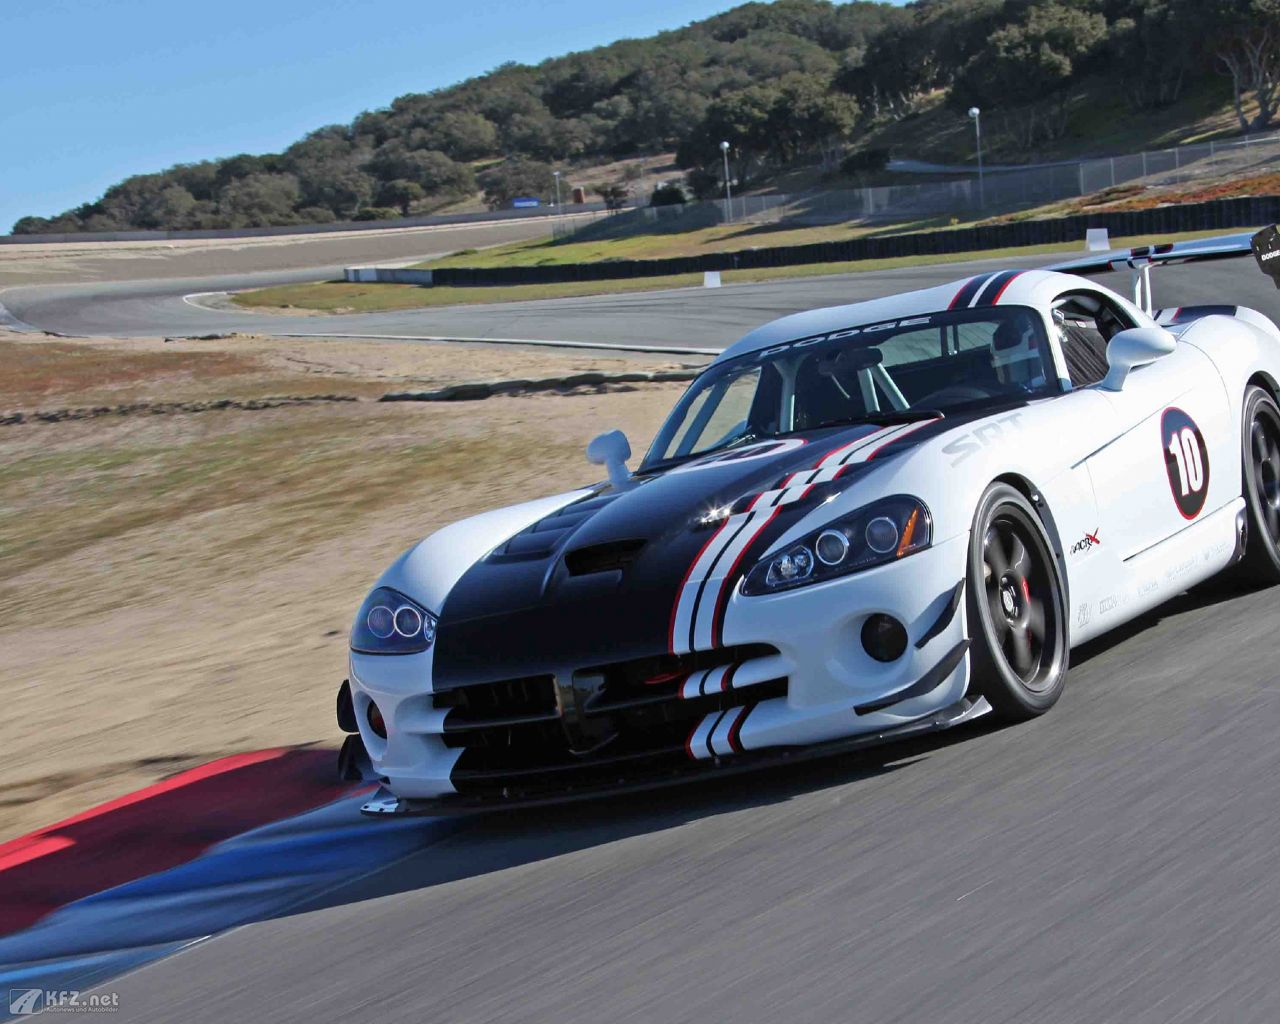 chrysler-dodge-viper-1280x1024-16